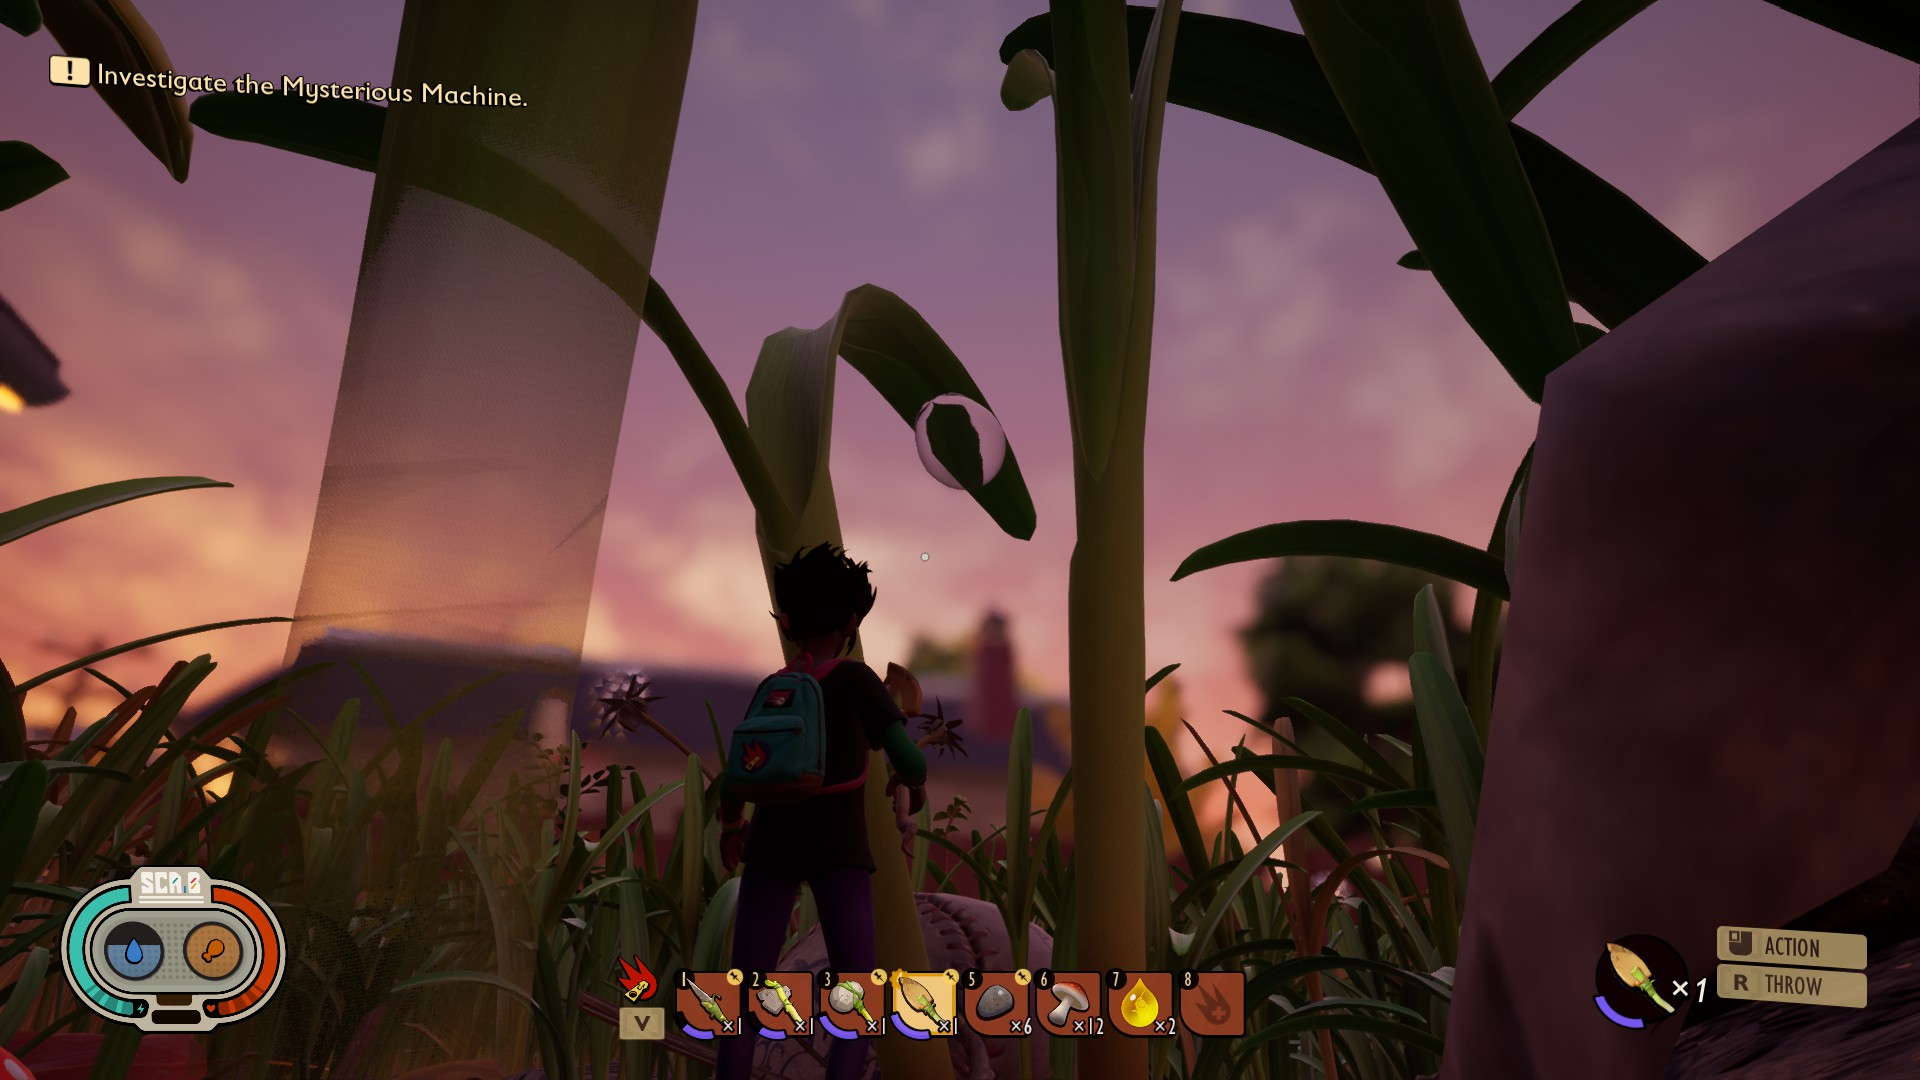 Third person view of the tiny player , looking out over a forest of grass and a pretty dawn sky. In the centre is a curved blade of grass with a large drop of dew on.